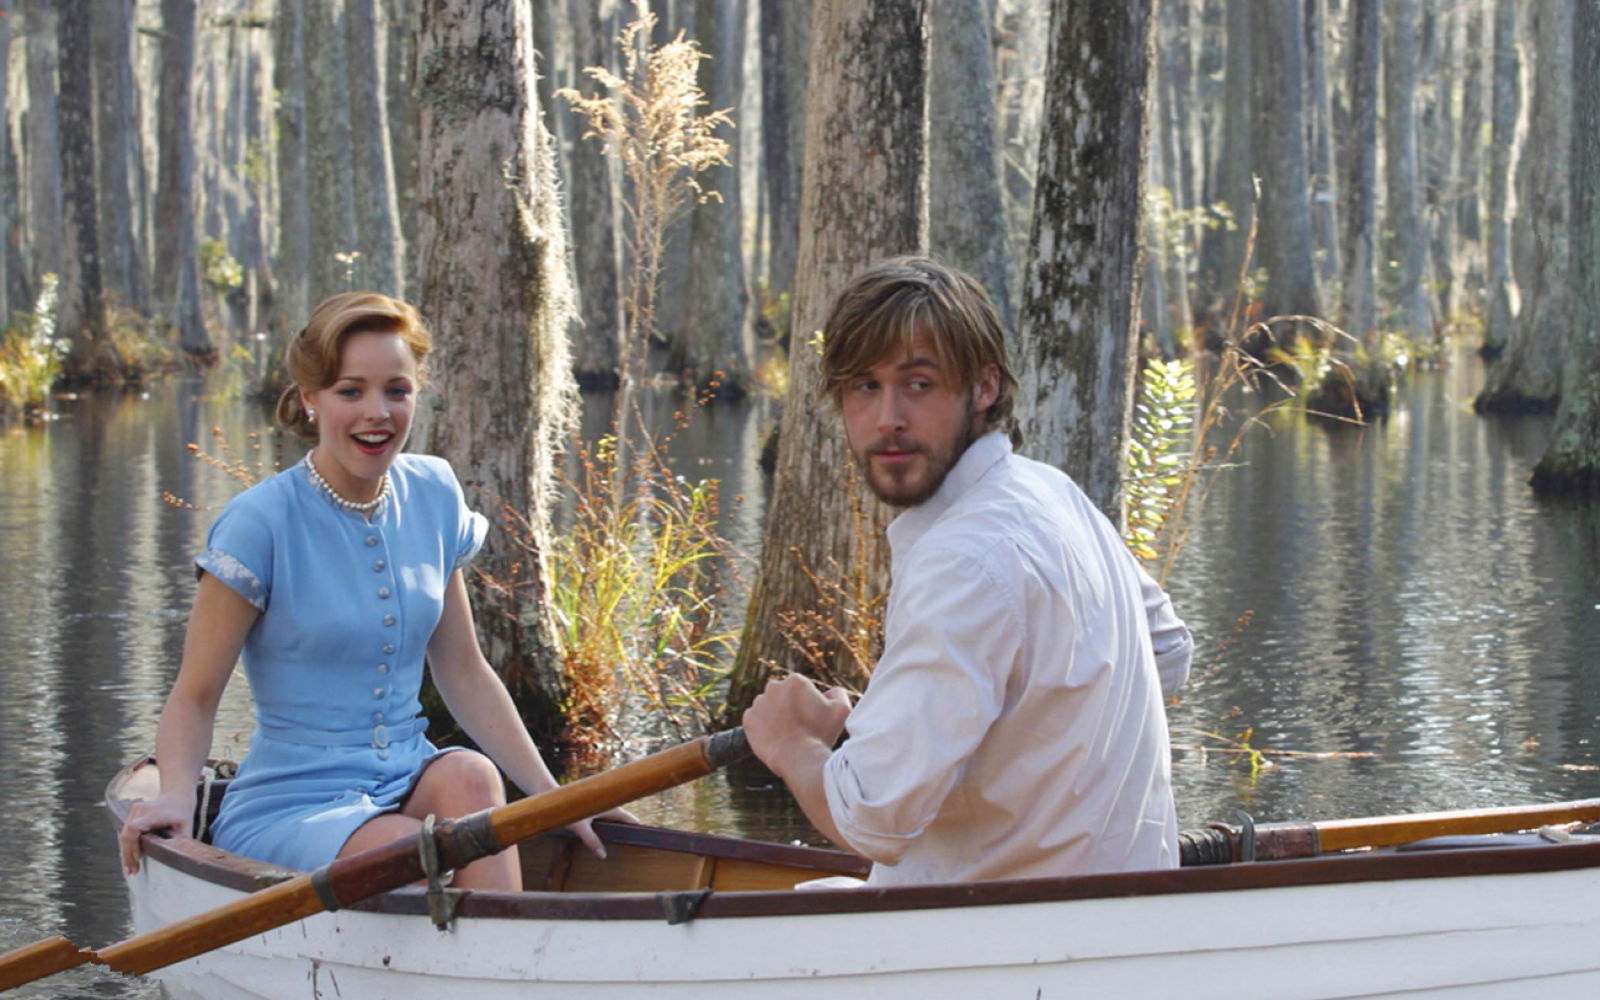 19 Of The Most Beautiful Quotes From 'The Notebook' That Define The Love We All Hope For